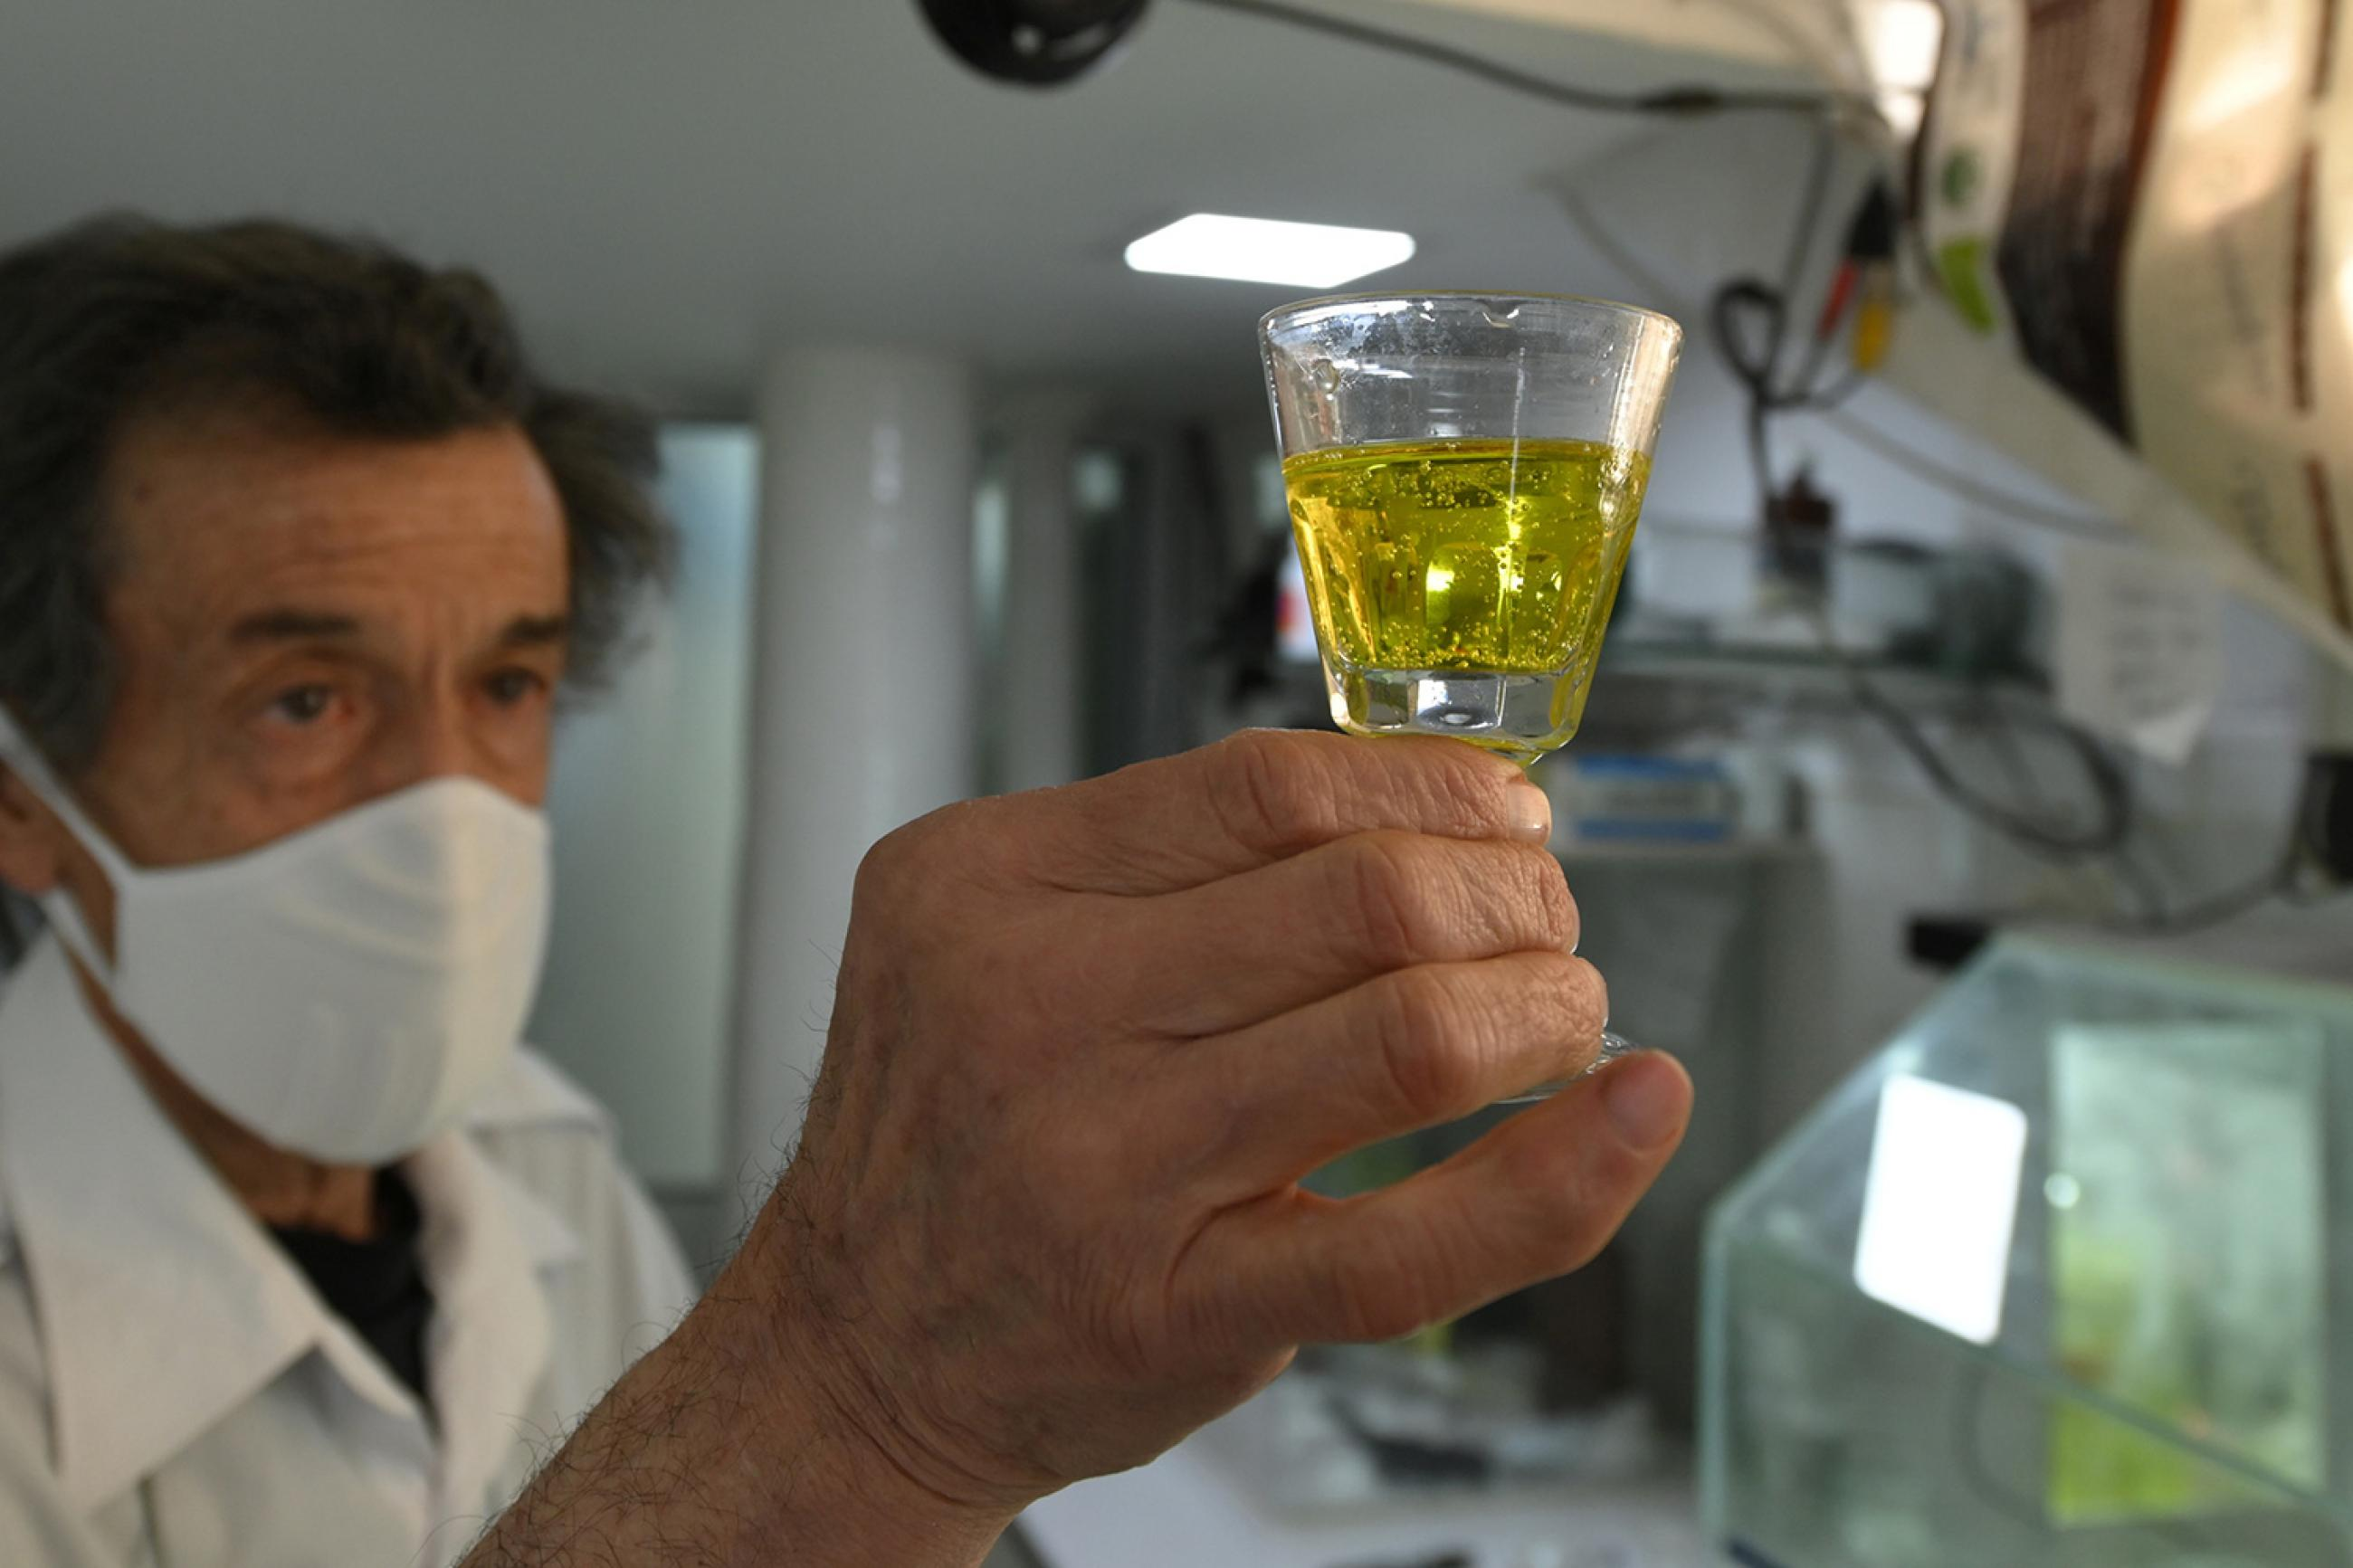 A pharmacist holds a medicine containing chlorine dioxide at the Farmacia Boliviana, amid the outbreak of the coronavirus disease (COVID-19), in Cochabamba, Bolivia, on July 21, 2020. The photo shows a man wearing a mask holding up a wine glass filled with a bright yellow liquid. REUTERS/Danilo Balderrama